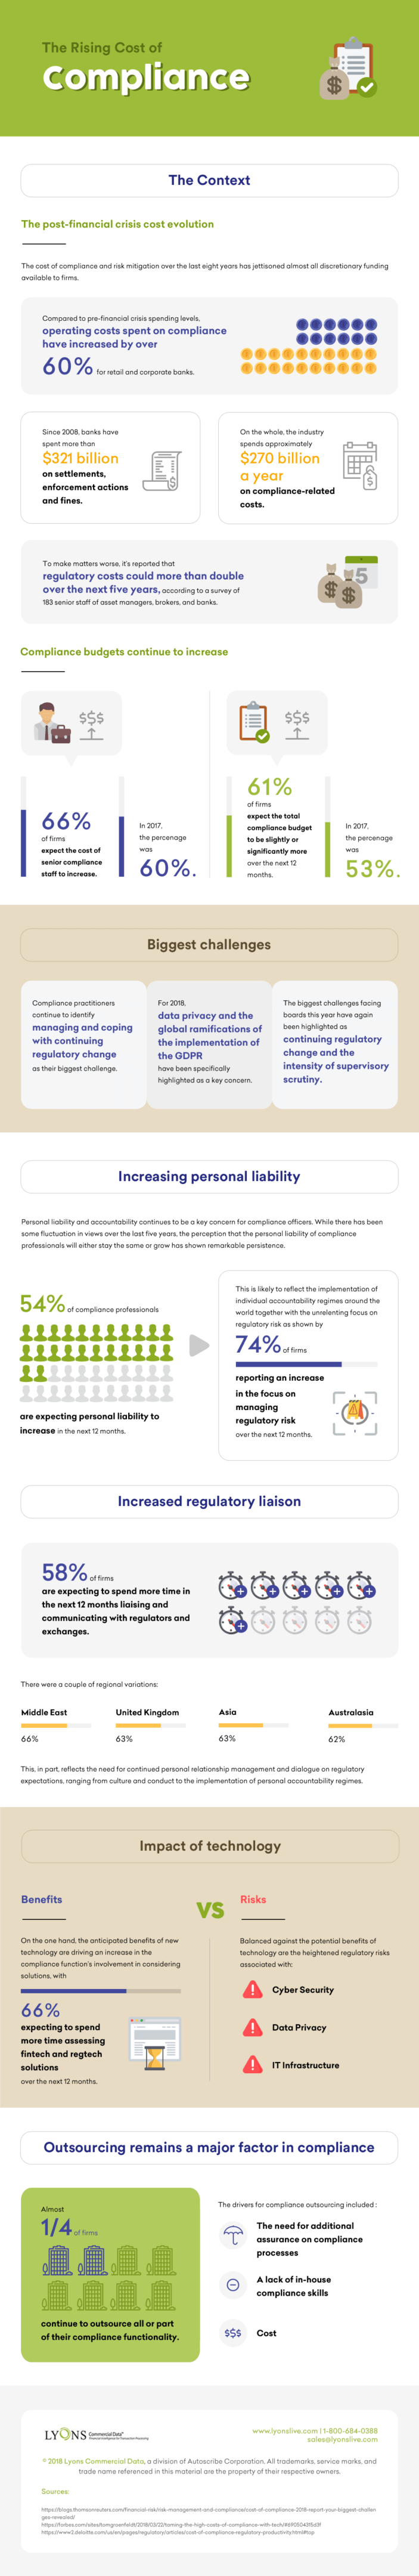 The Rising Cost of Compliance Infographic